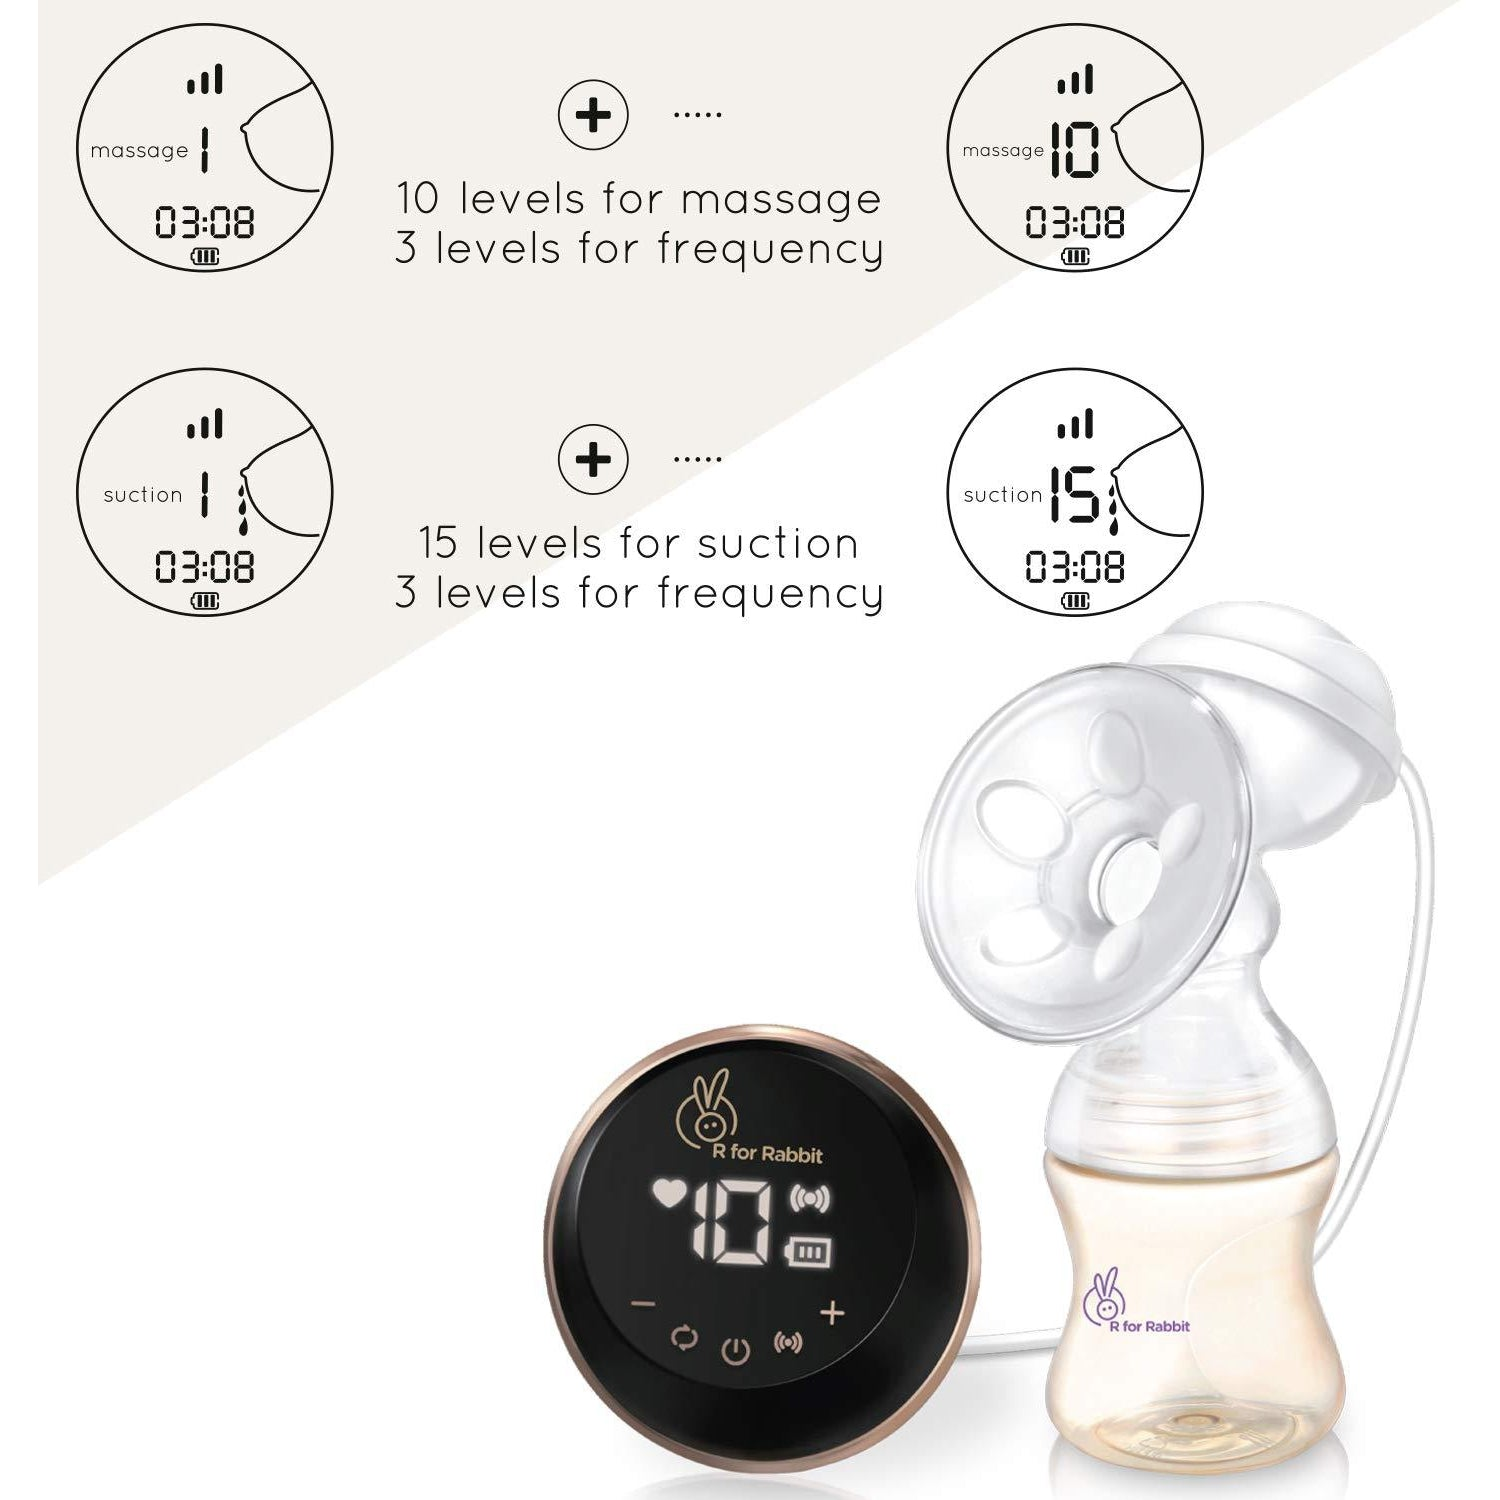 R for Rabbit First Feed Smart Electric Breast Pump for Moms